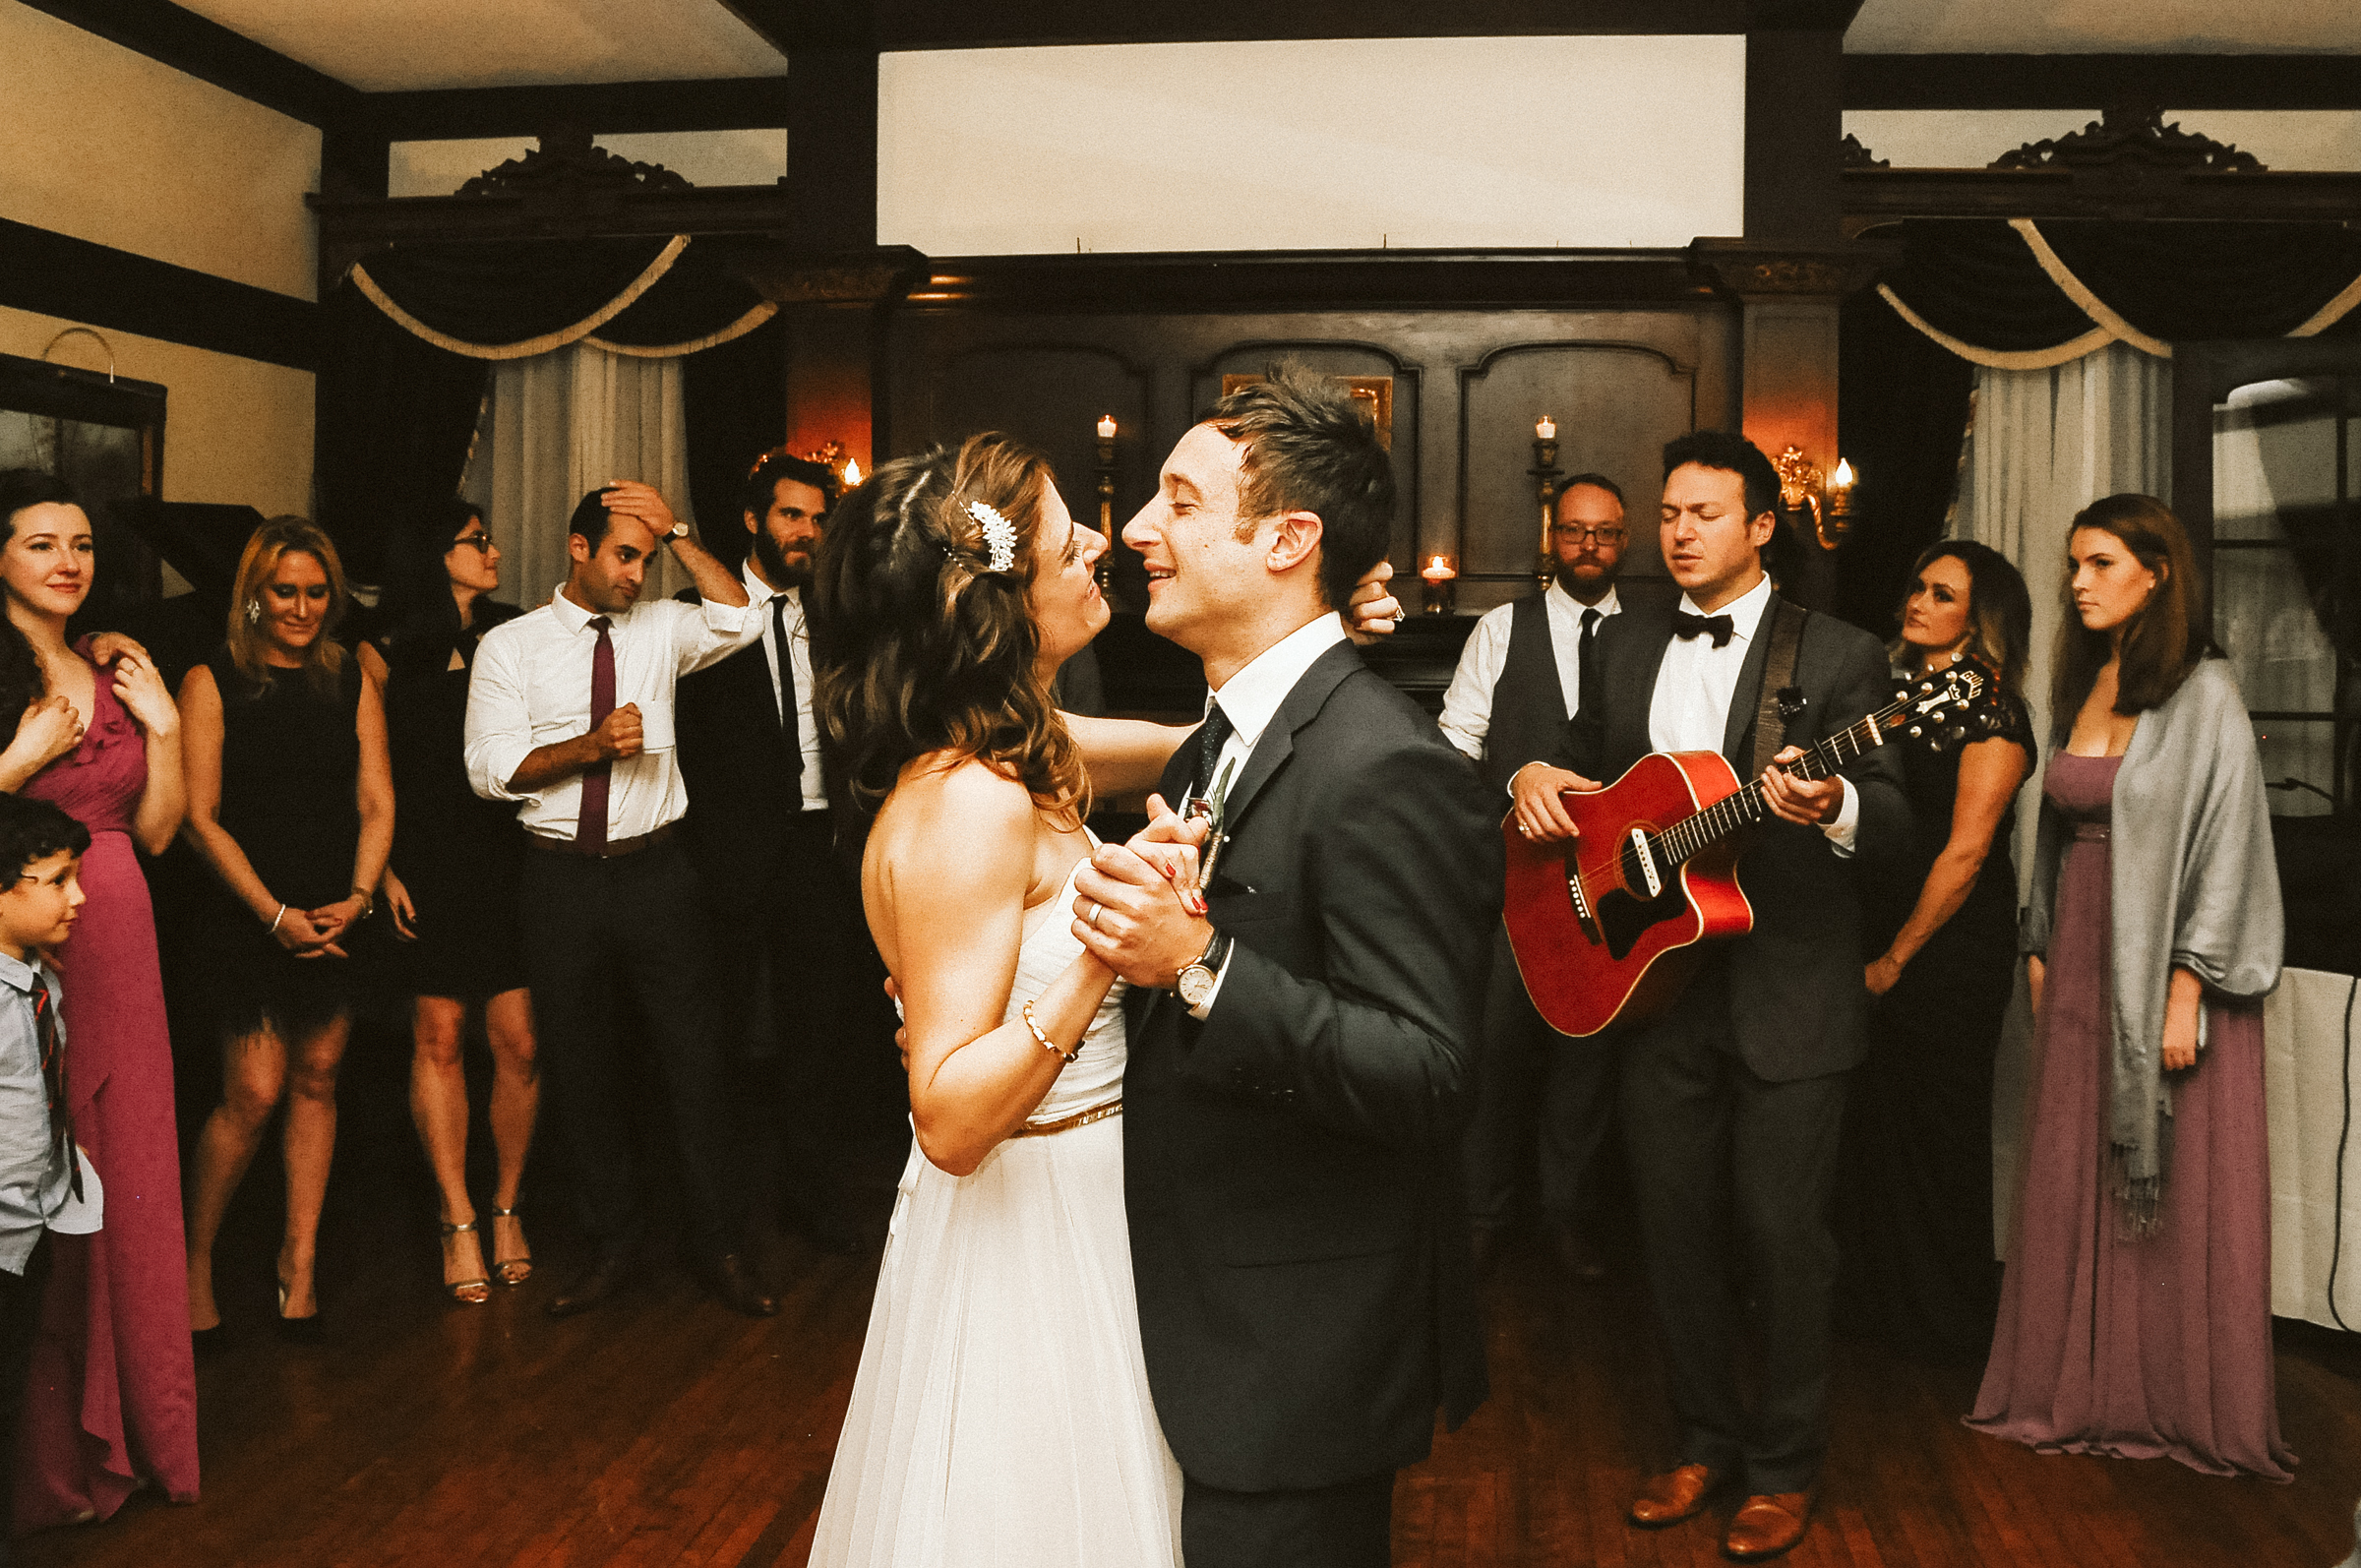 Jen and Drew's Wedding Edited 2019 web-93.jpg